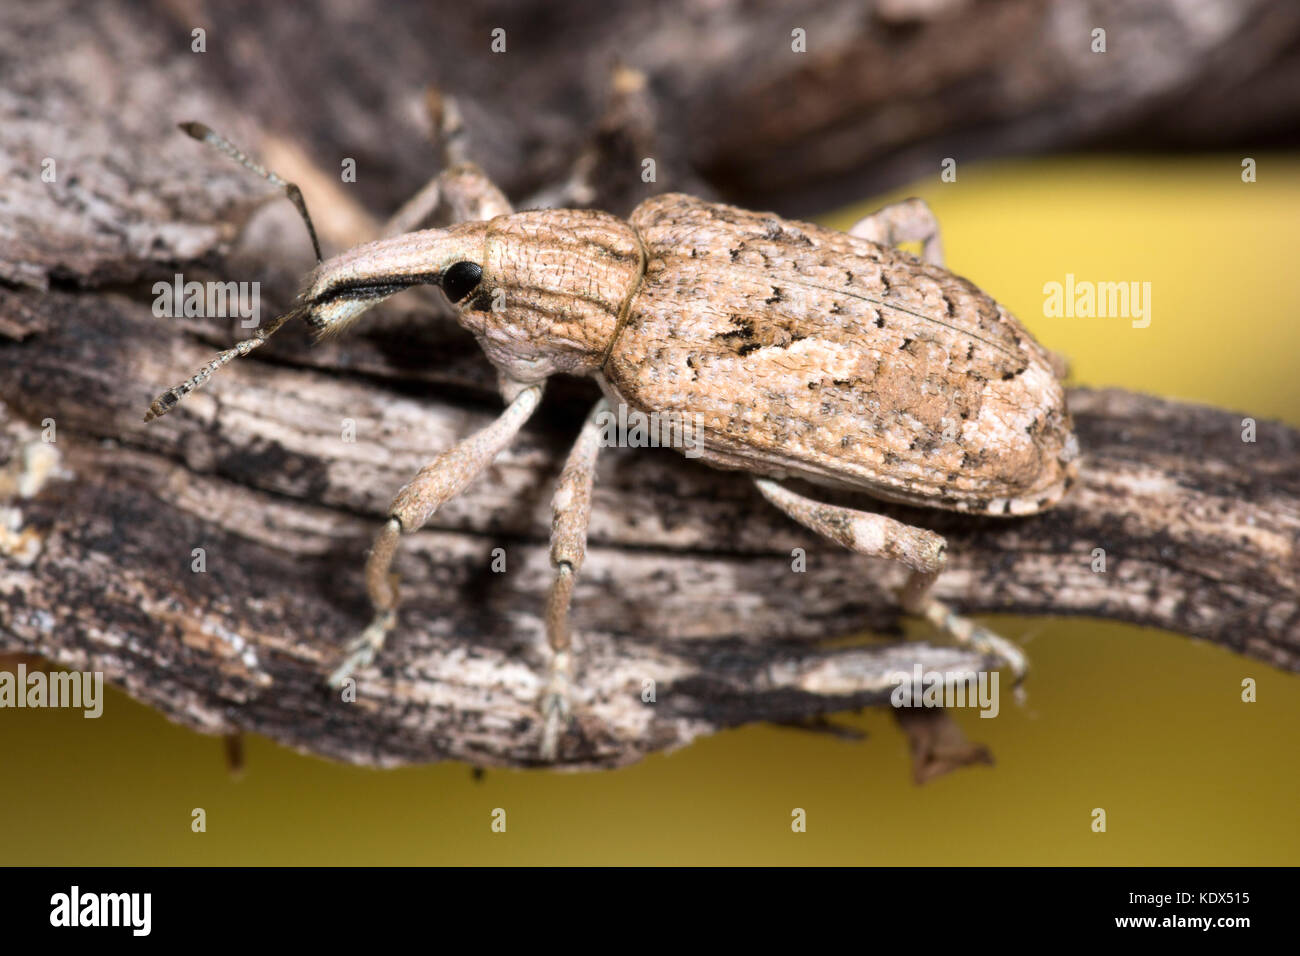 Weevil Beetle macro photograph - Stock Image